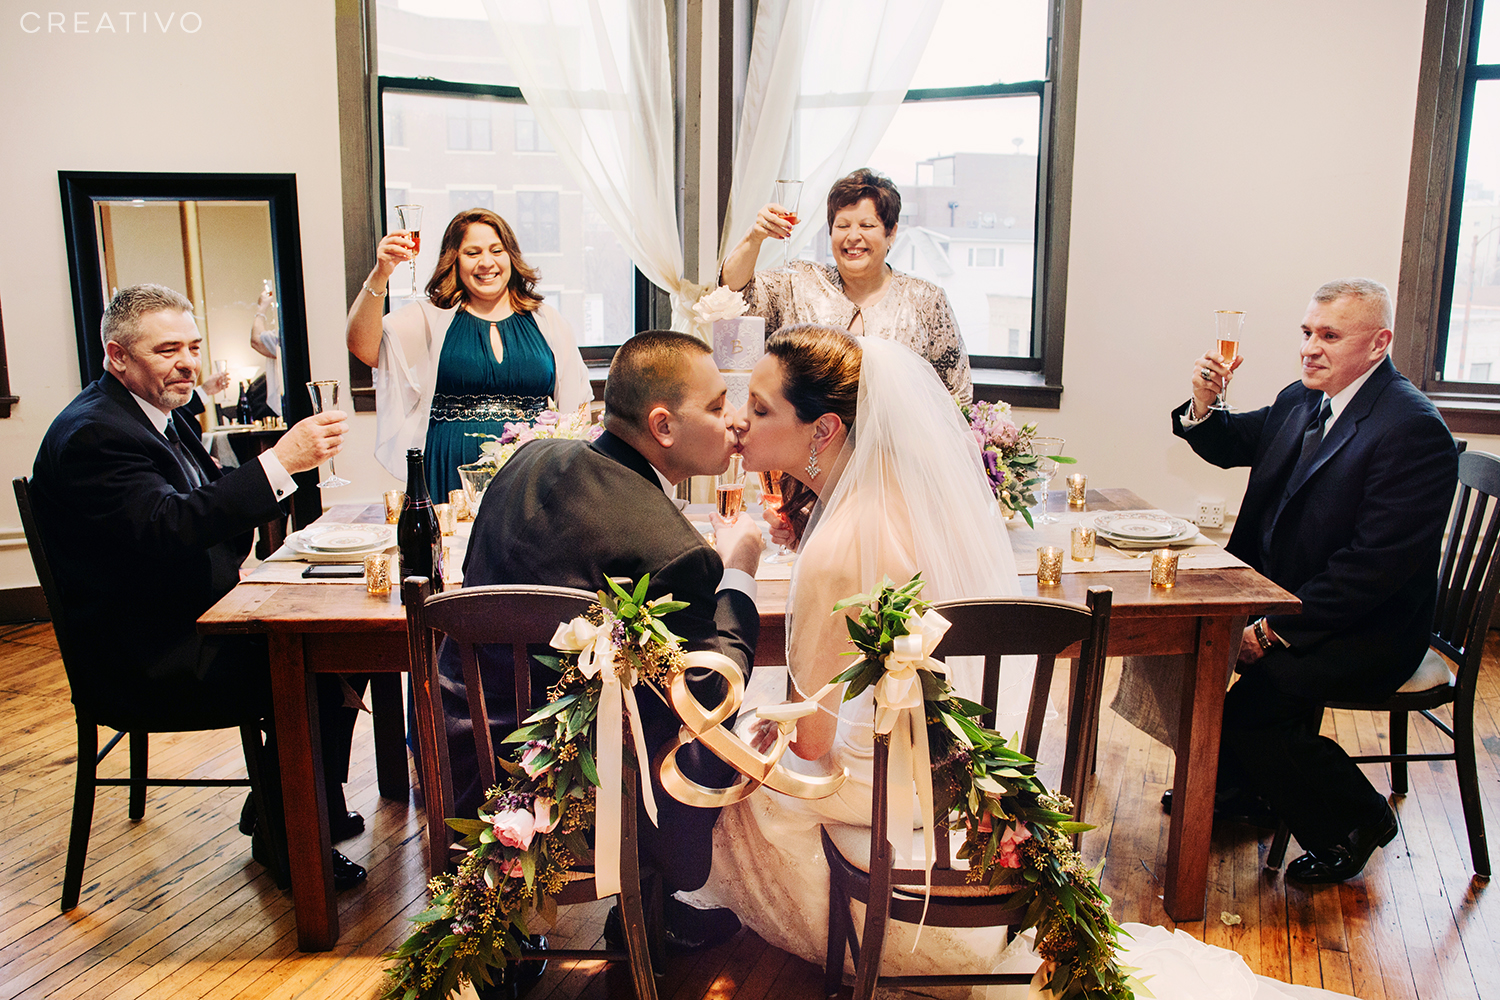 """12. A """"mini wedding"""" elopement with your parents plus custom decorations, cake and champagne"""